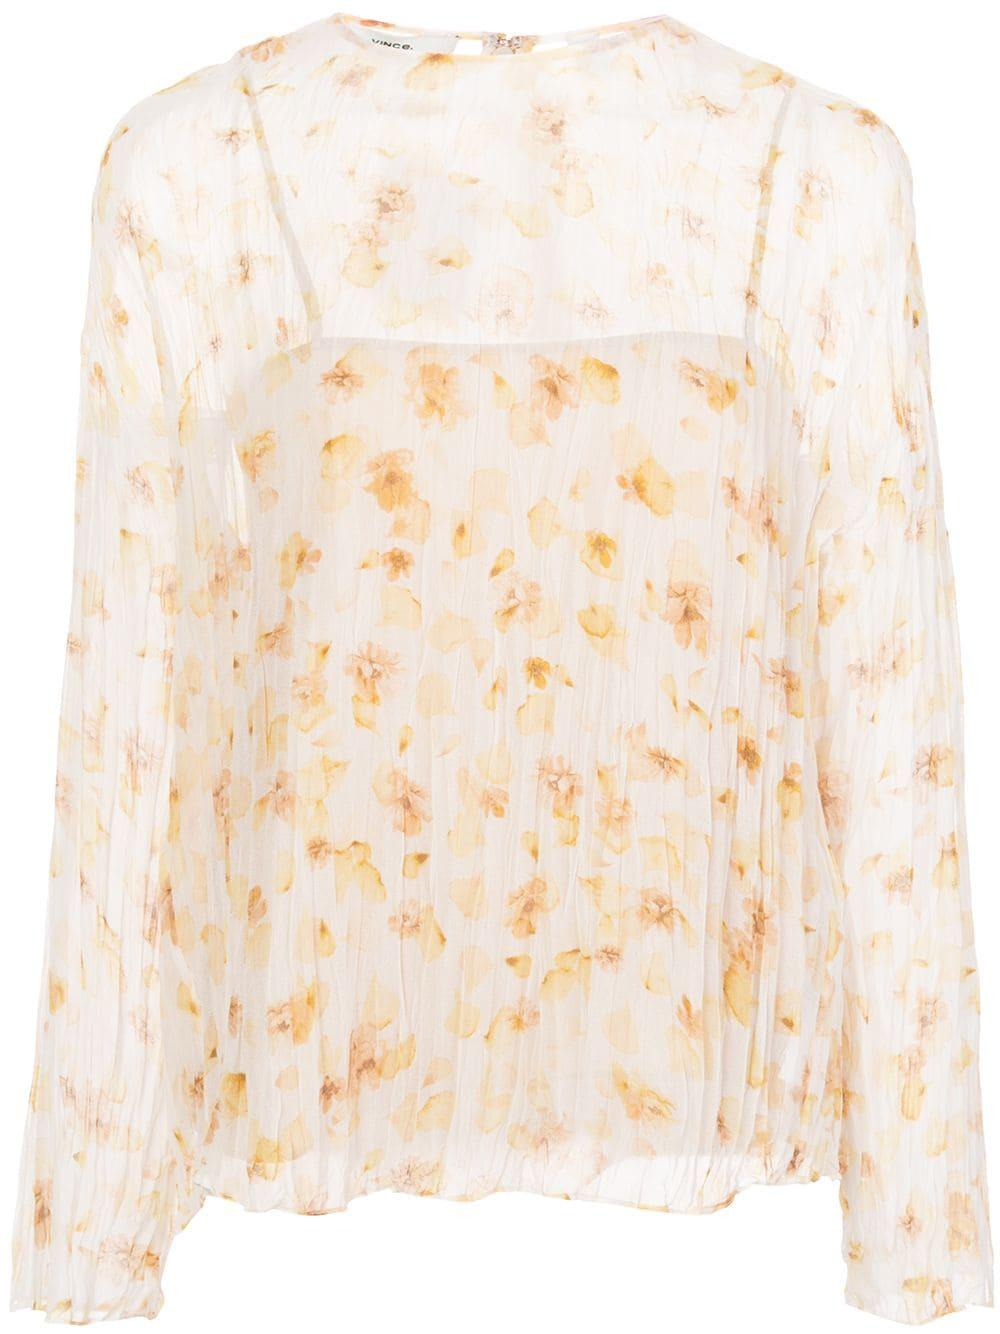 Pressed Petal Blouse Item # V651112287